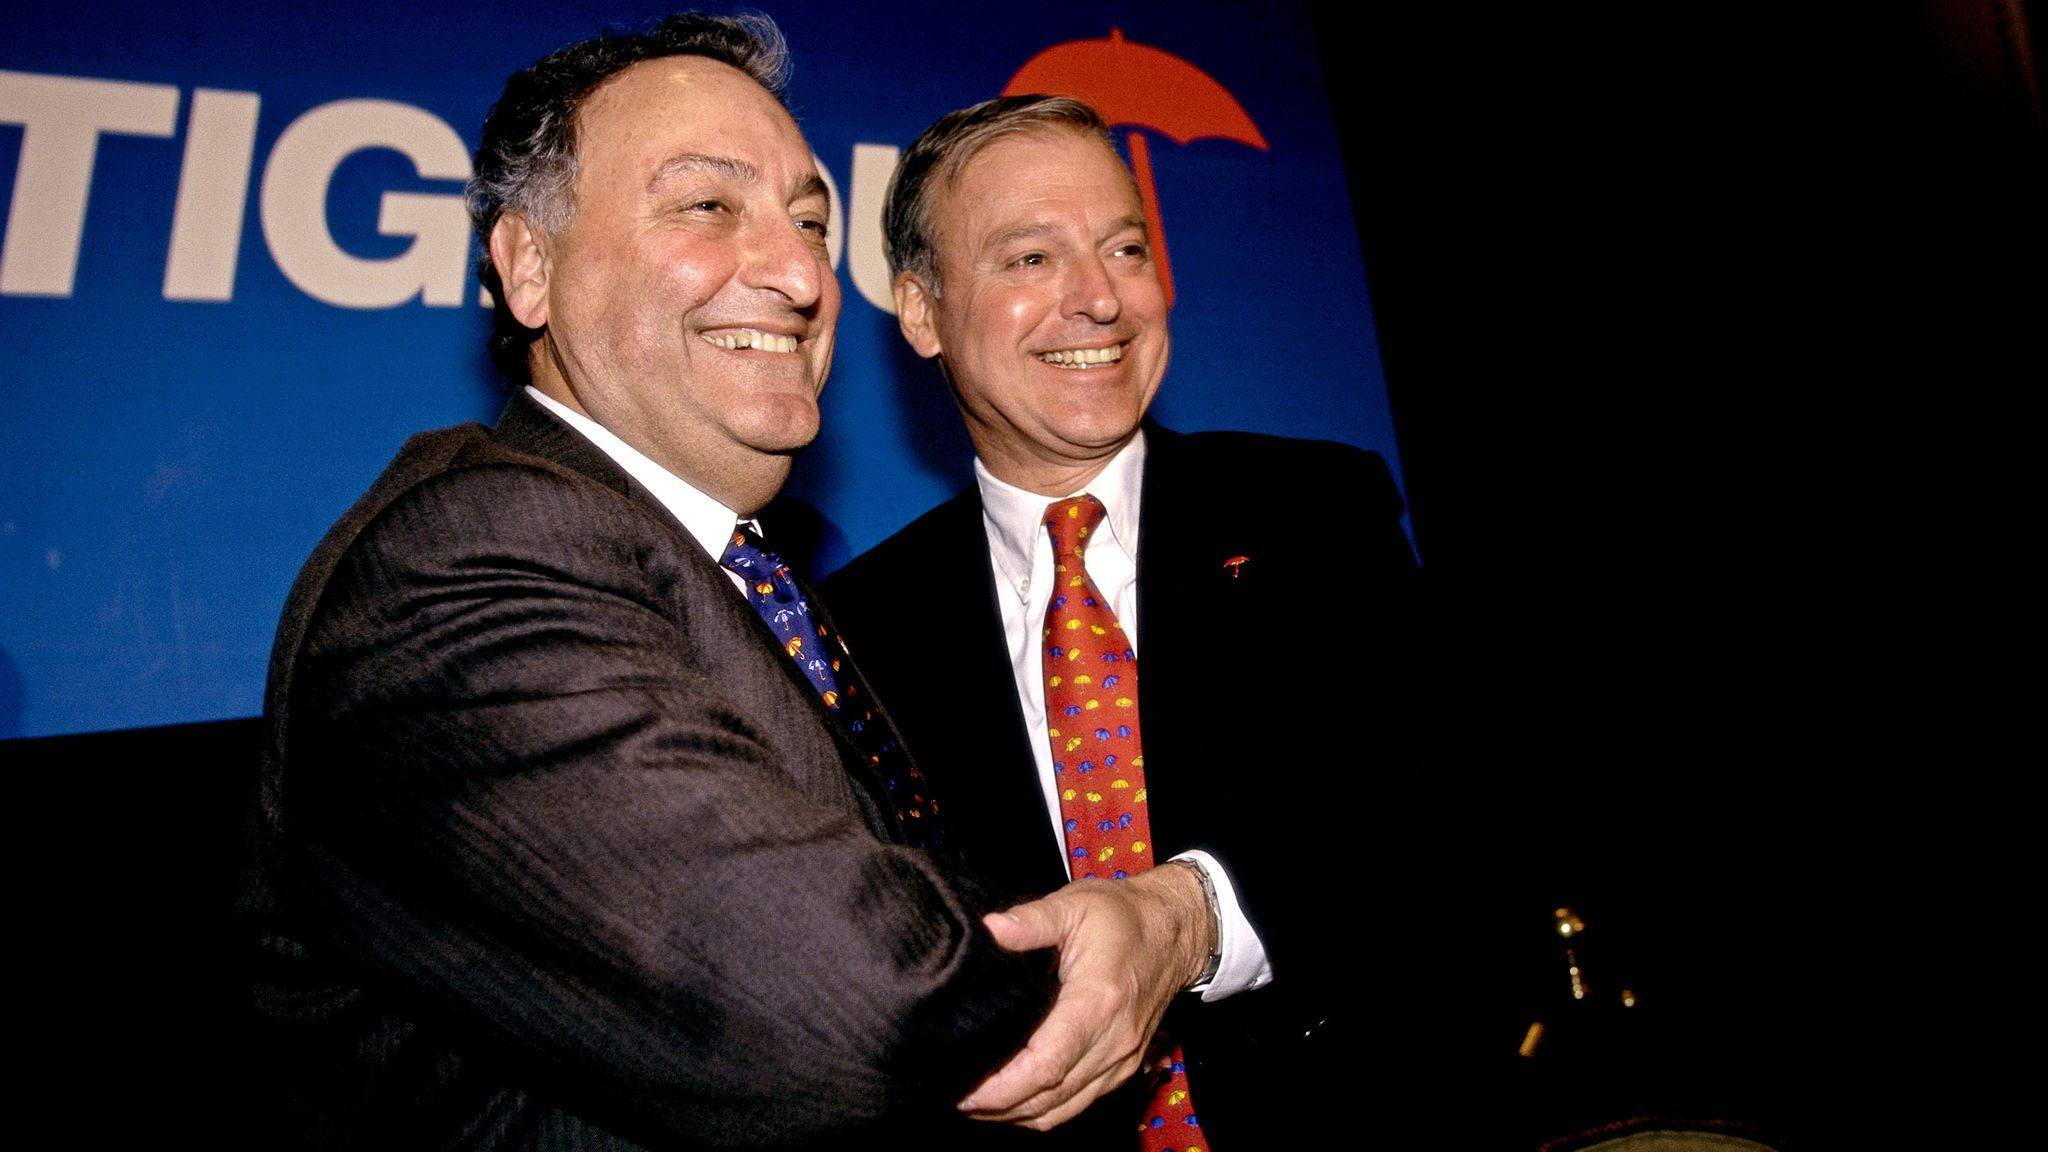 Sanford Weill, left, chief executive of Travelers Insurance, and John S. Reed, CEO of Citibank, announce the merger of their companies in 1998.